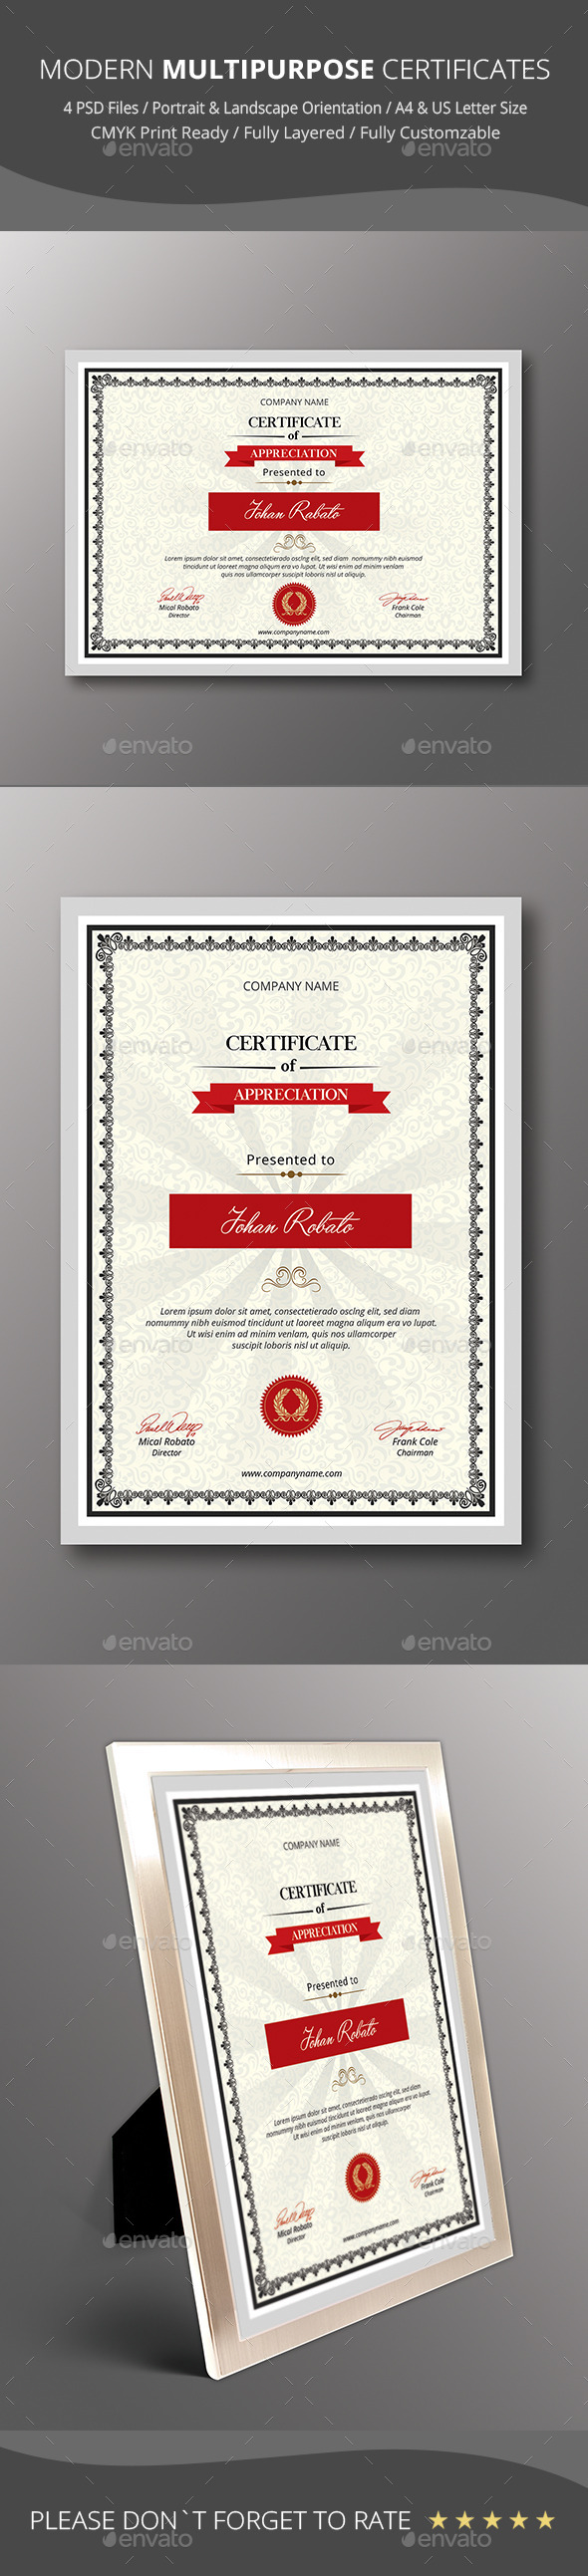 GraphicRiver Modern Multipurpose Certificates 9376759